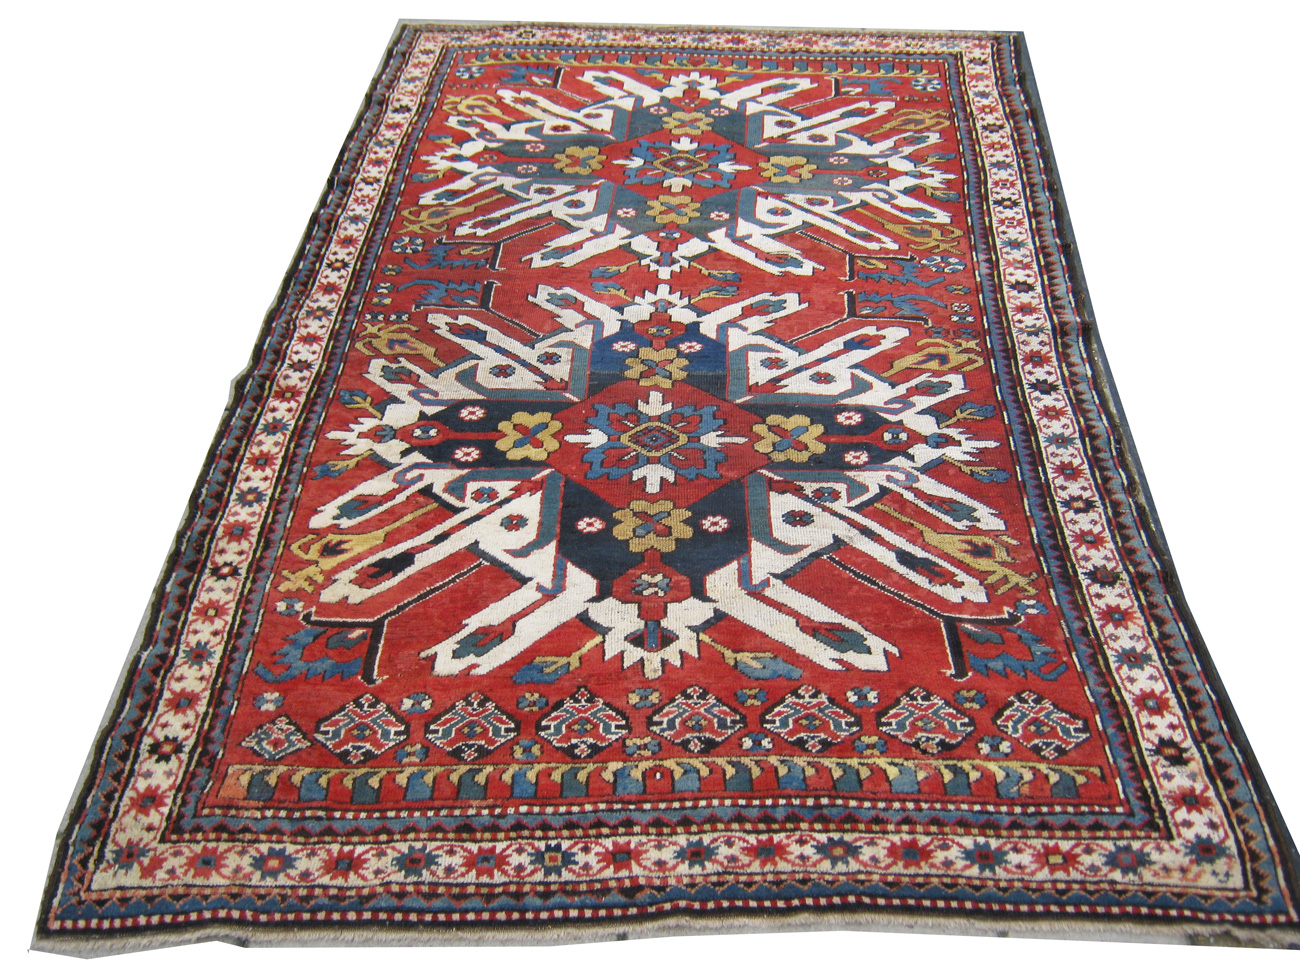 Rug 19th century eagle kasak 19th century gelaberd eagle kasak rug